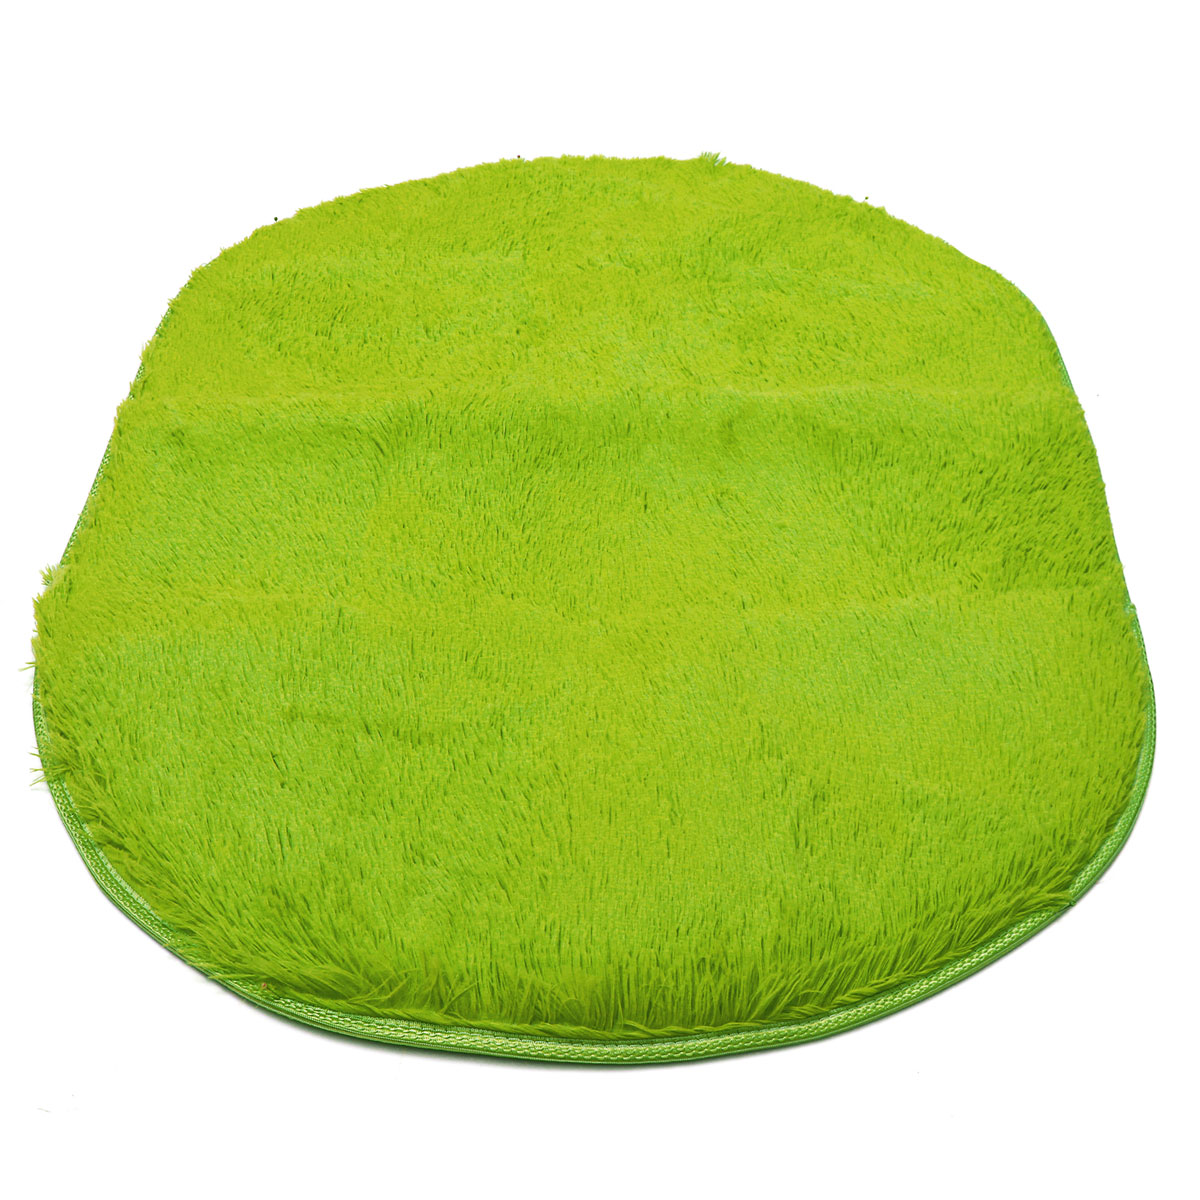 """47.3""""x31.5"""" Modern Oval Fluffy Rugs Anti-Skid Shaggy Area Rug Dining Room Bedroom Carpet Floor Mat Warm Mat/Cover Child Play Mat Fashion Home Decor - 14 ..."""